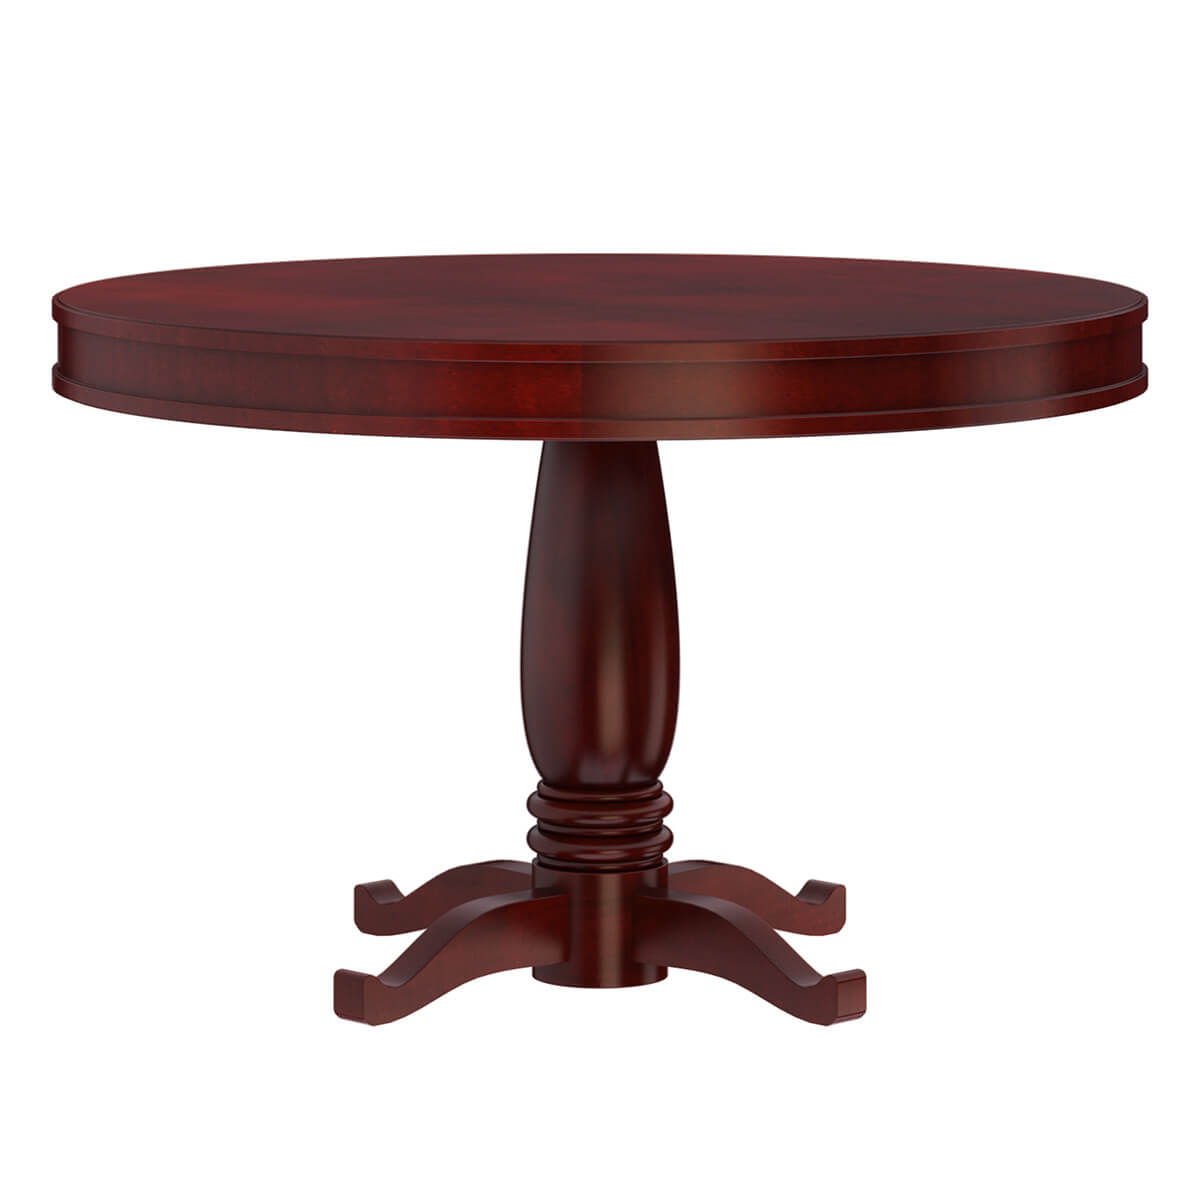 Garcia Solid Mahogany Wood Round Dining Table